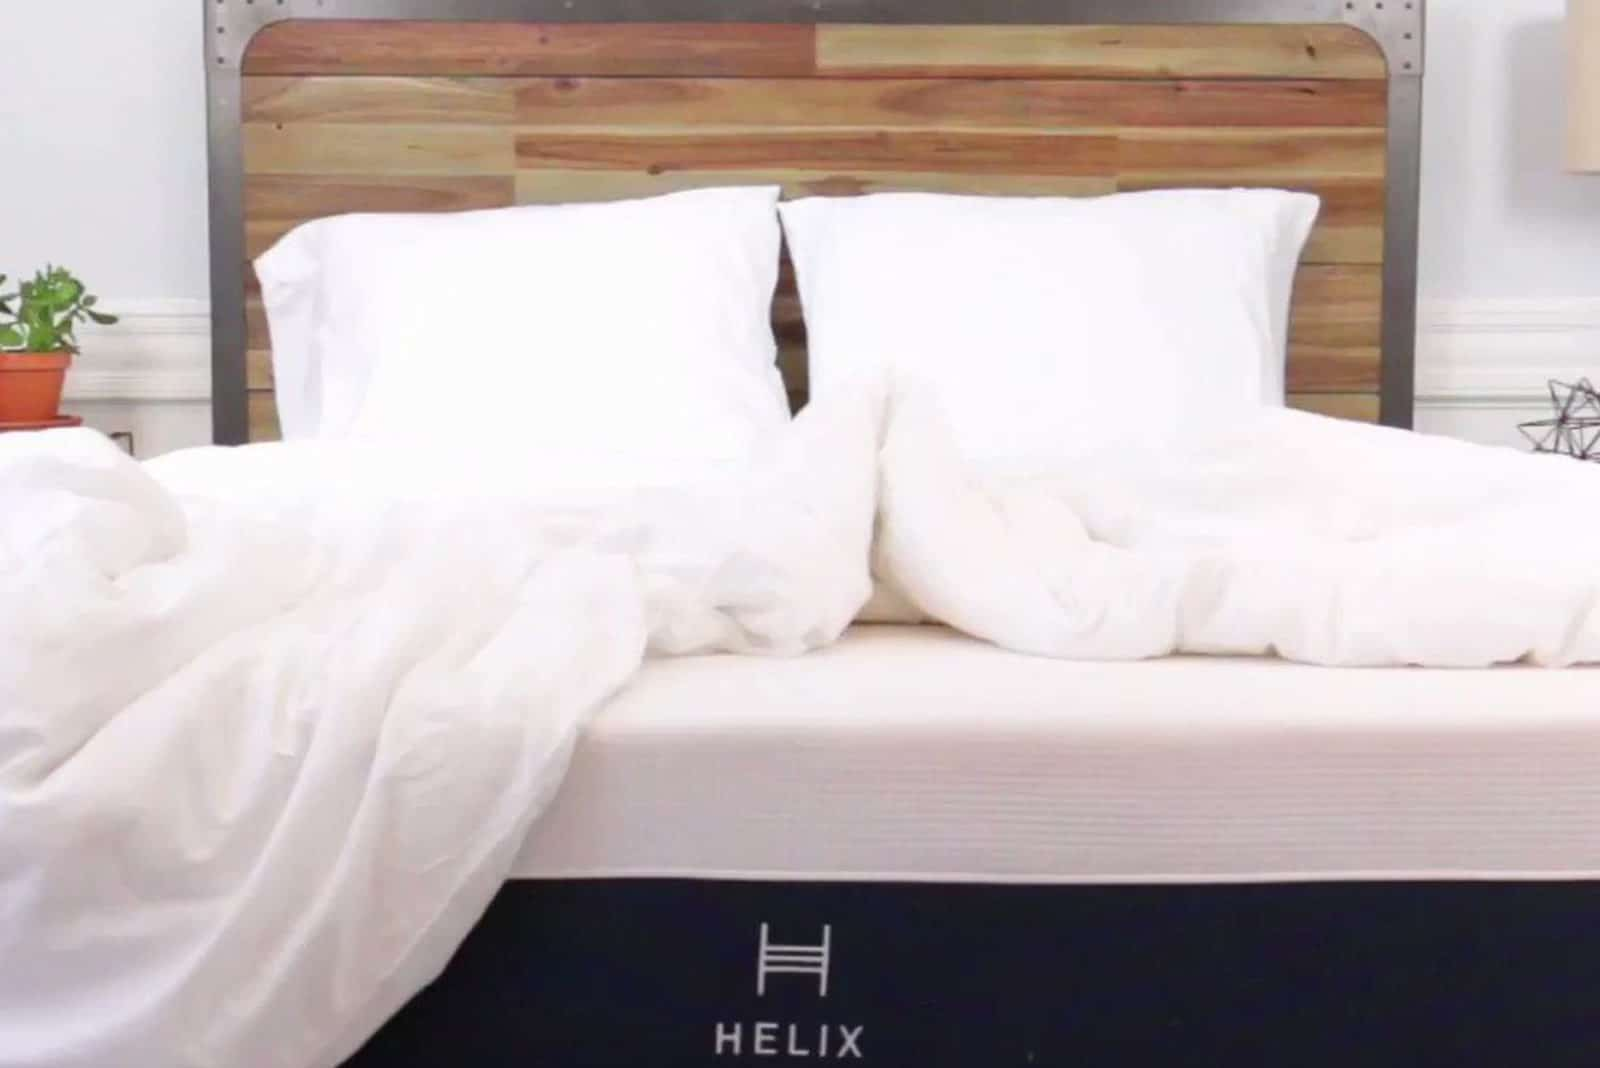 a Helix bed